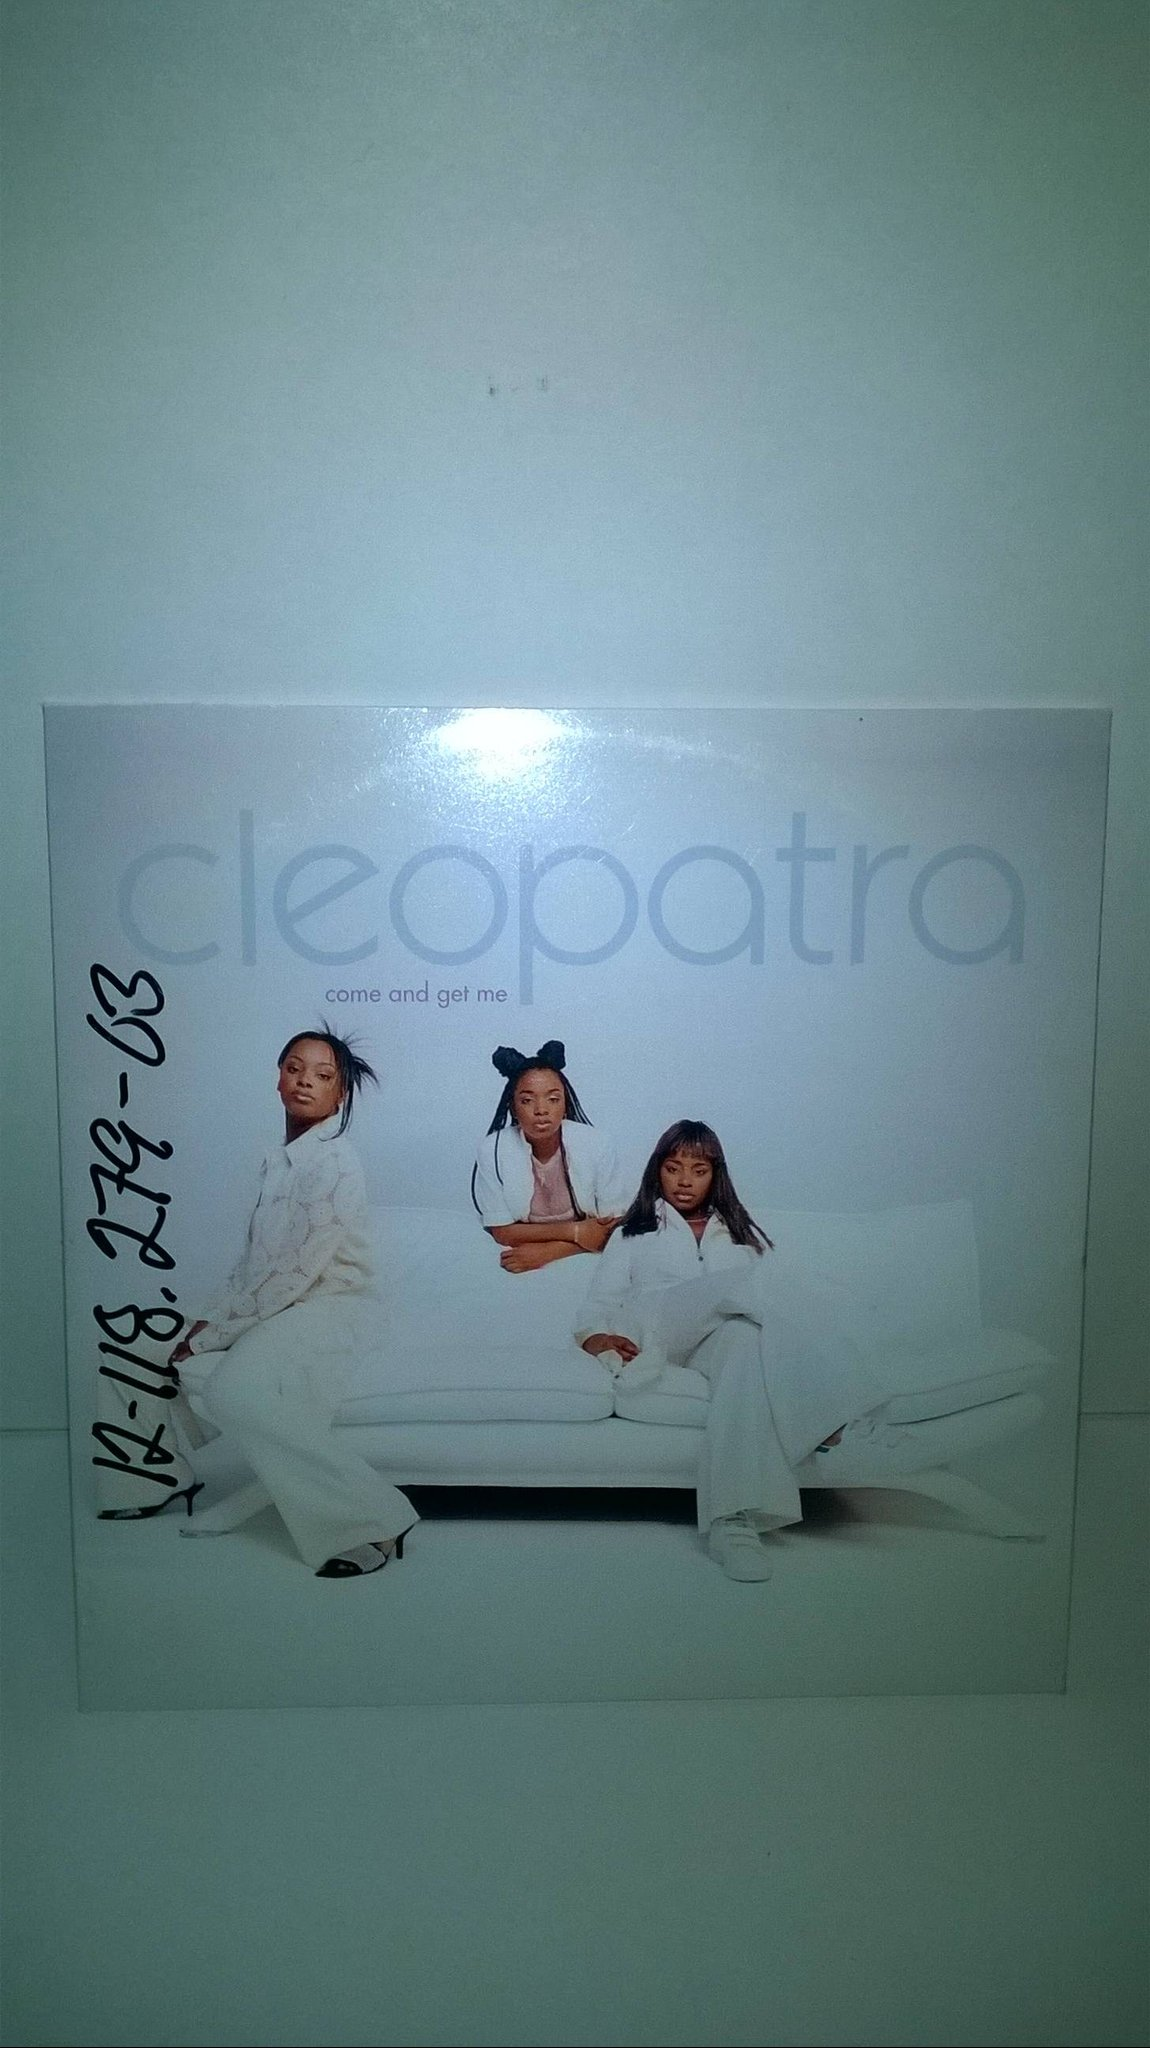 Cleopatra - Come And Get Me, single CD, promo